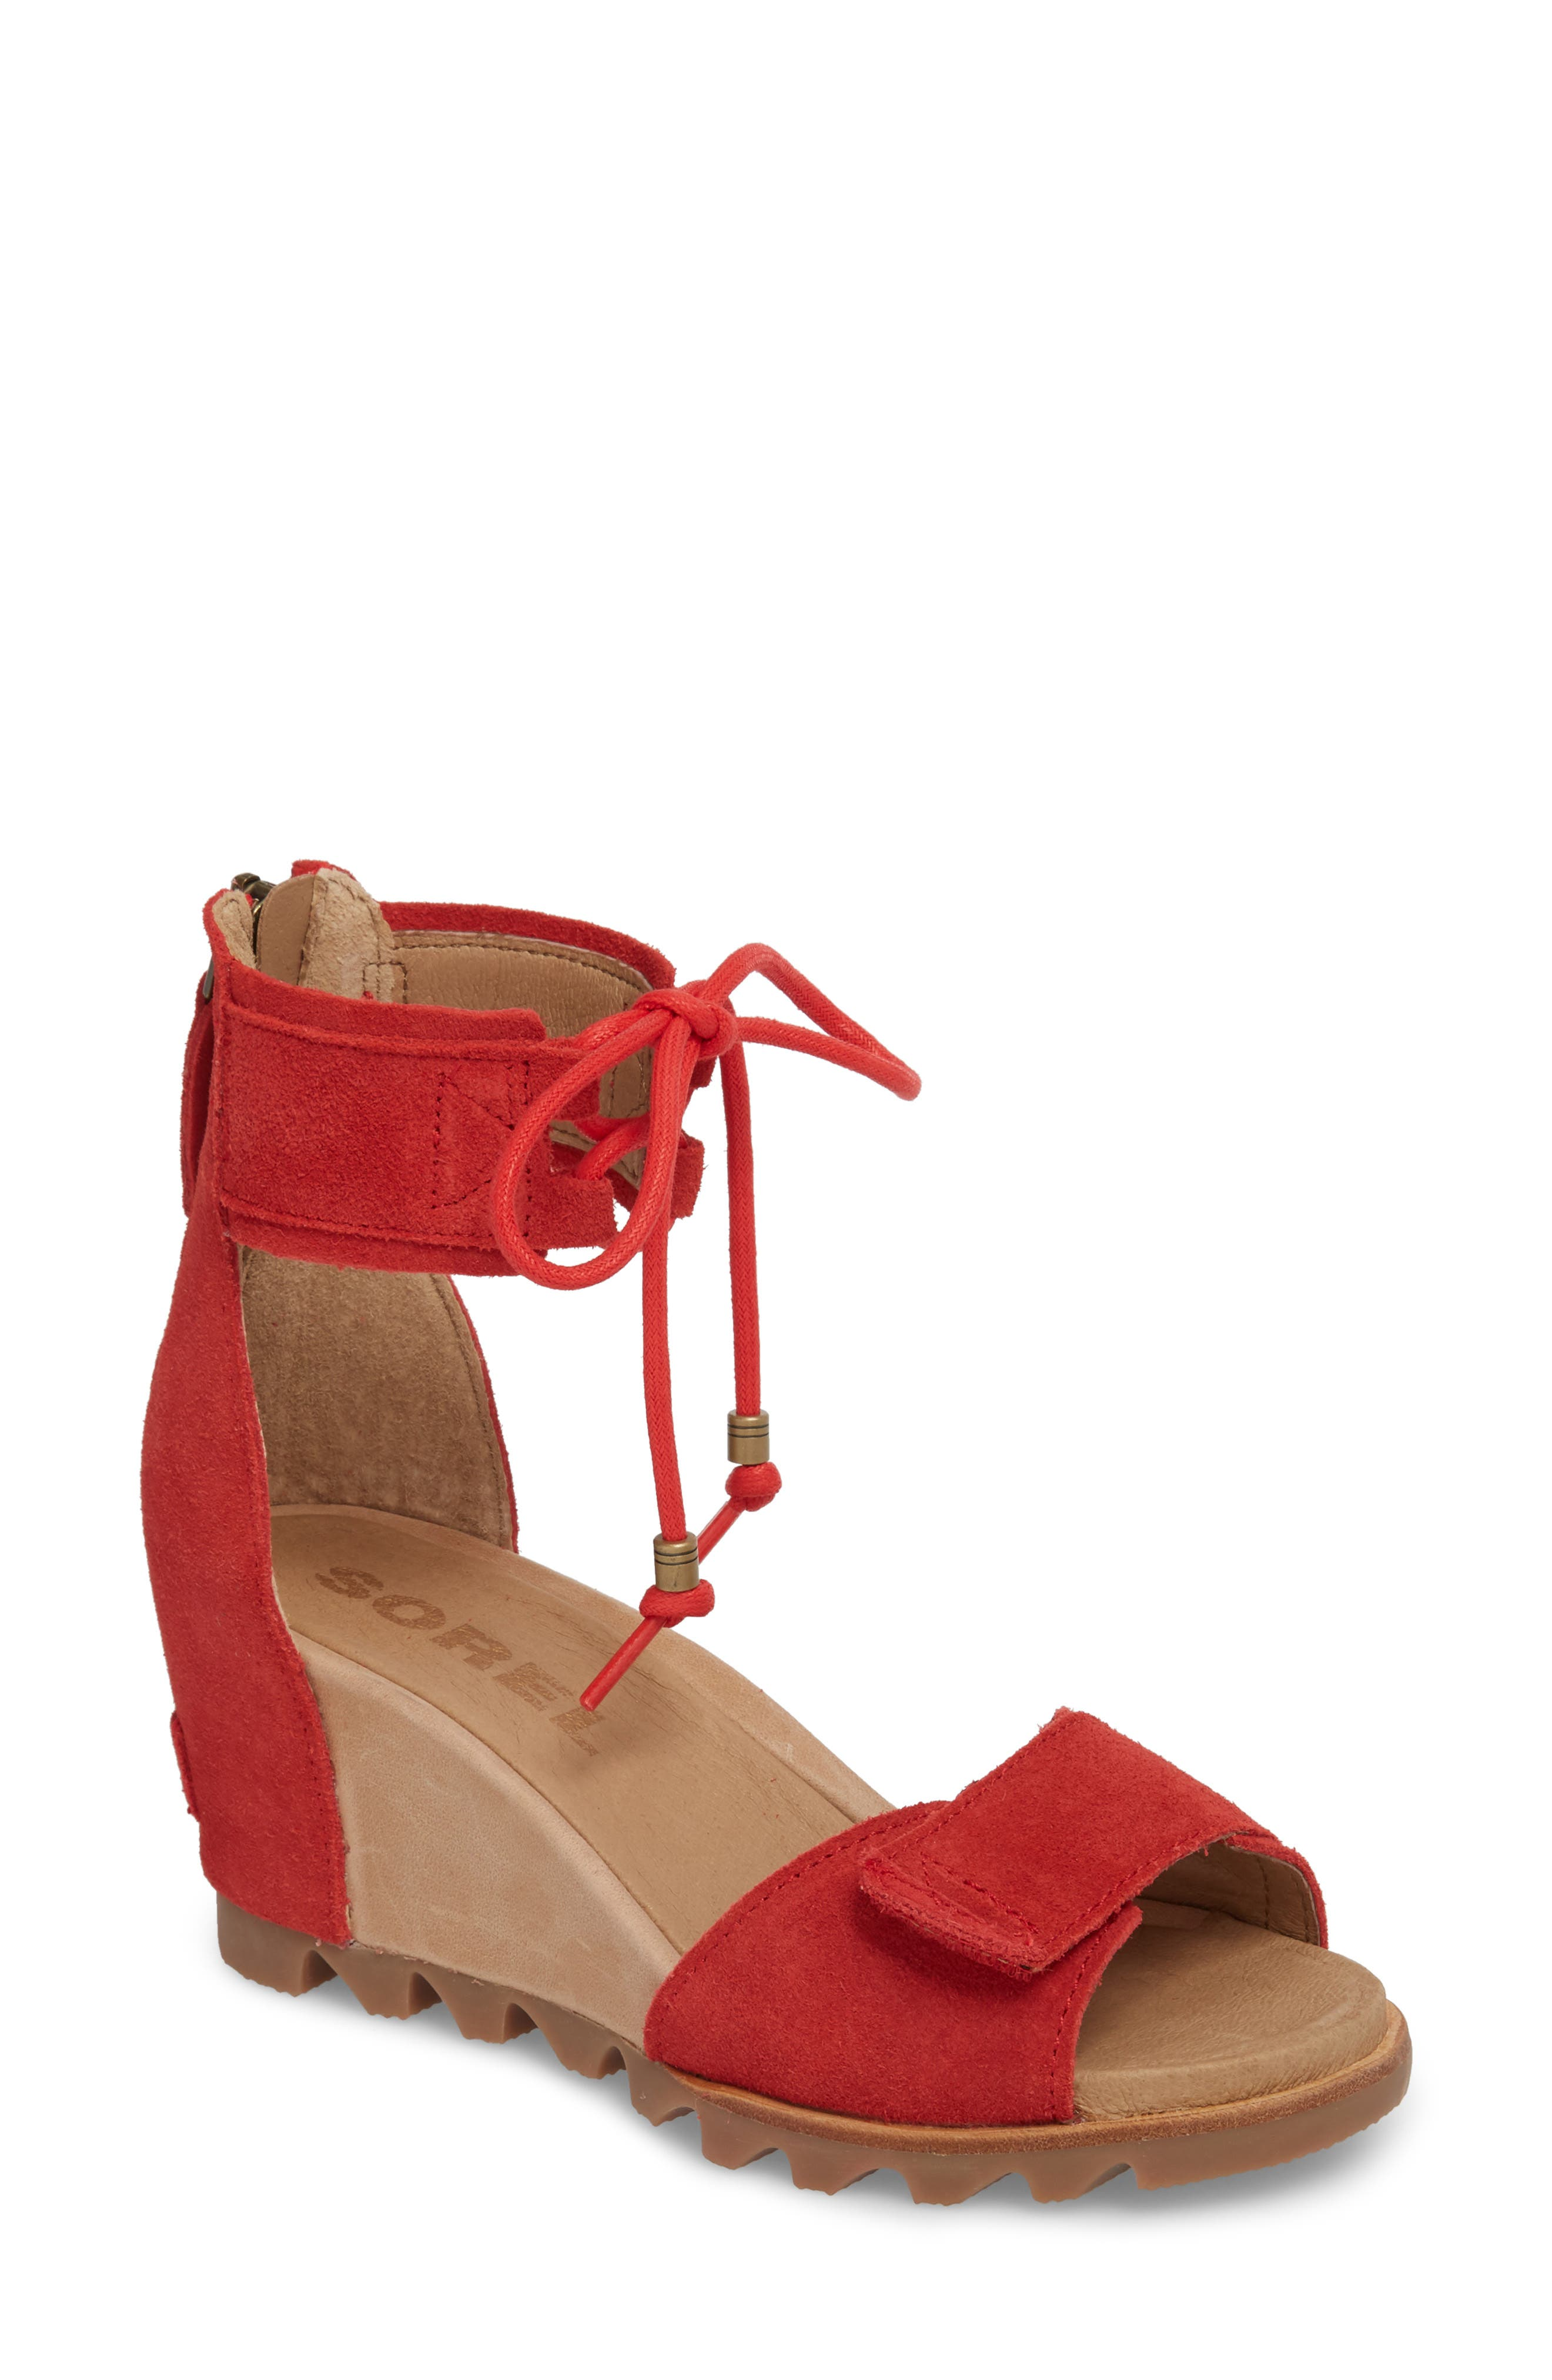 Joanie Cuff Wedge Sandal,                             Main thumbnail 1, color,                             Bright Red